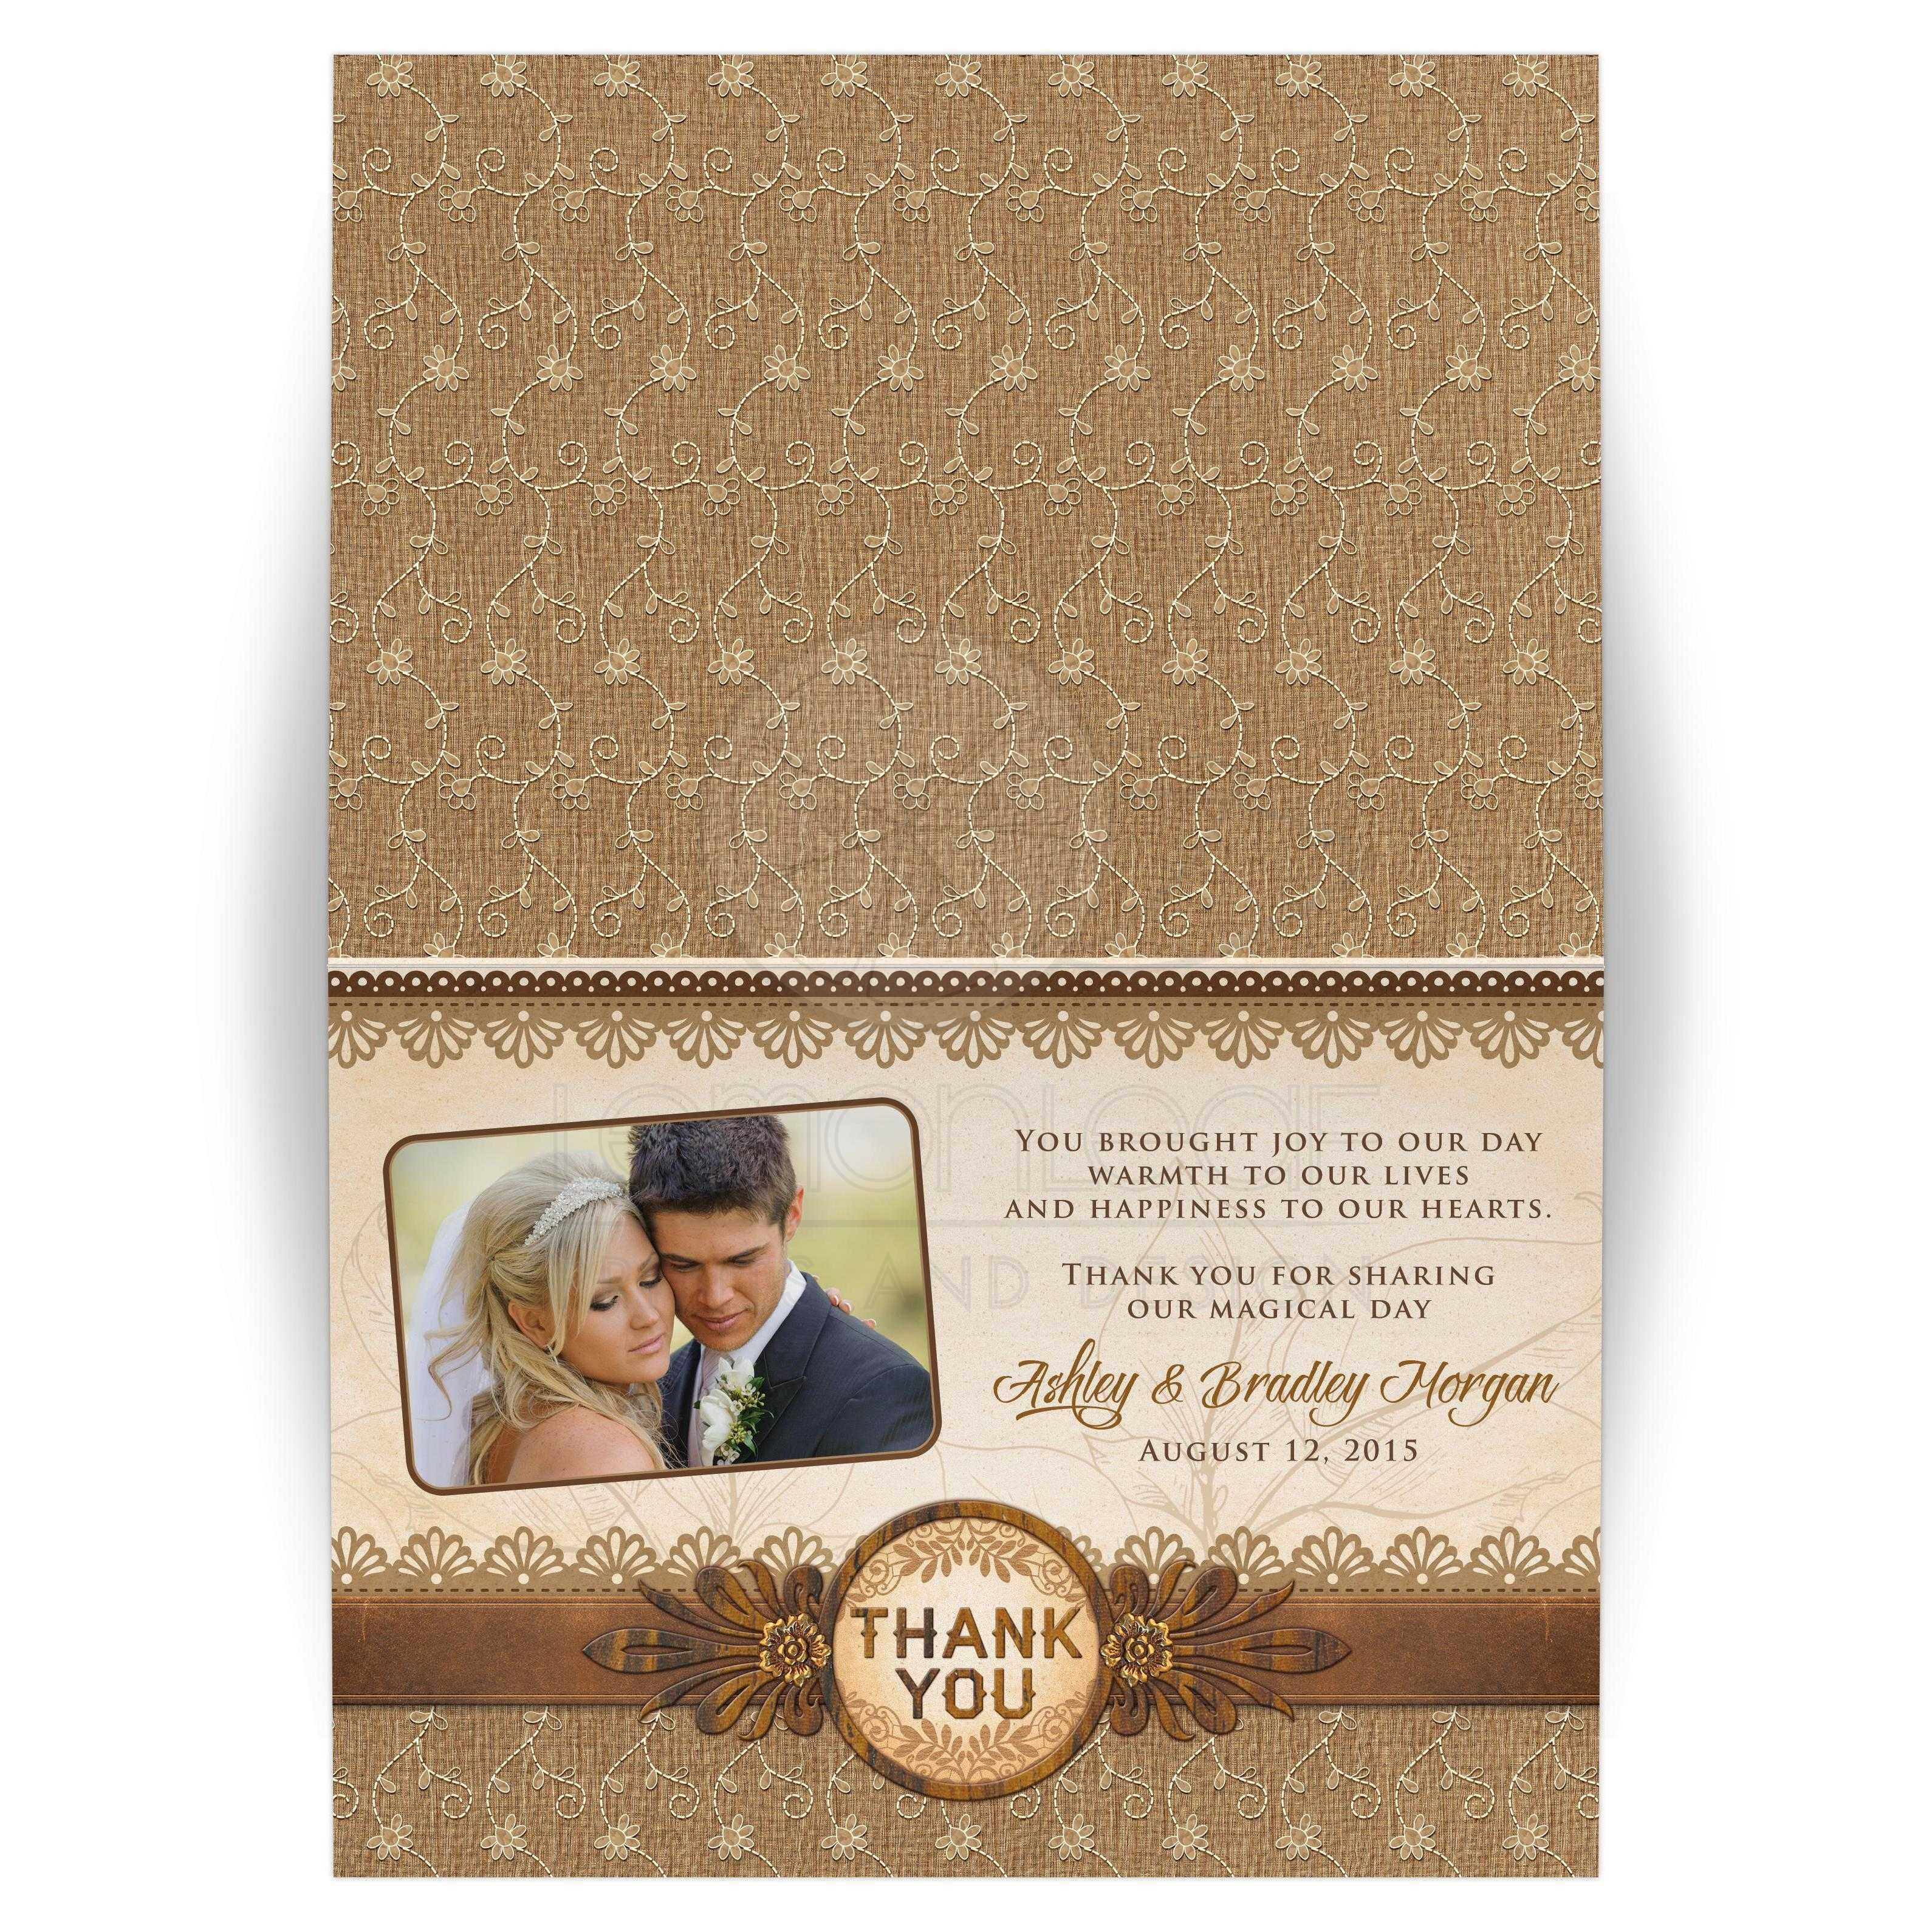 Elegant Rustic Burlap Lace And Wood Photo Wedding Thank You Card